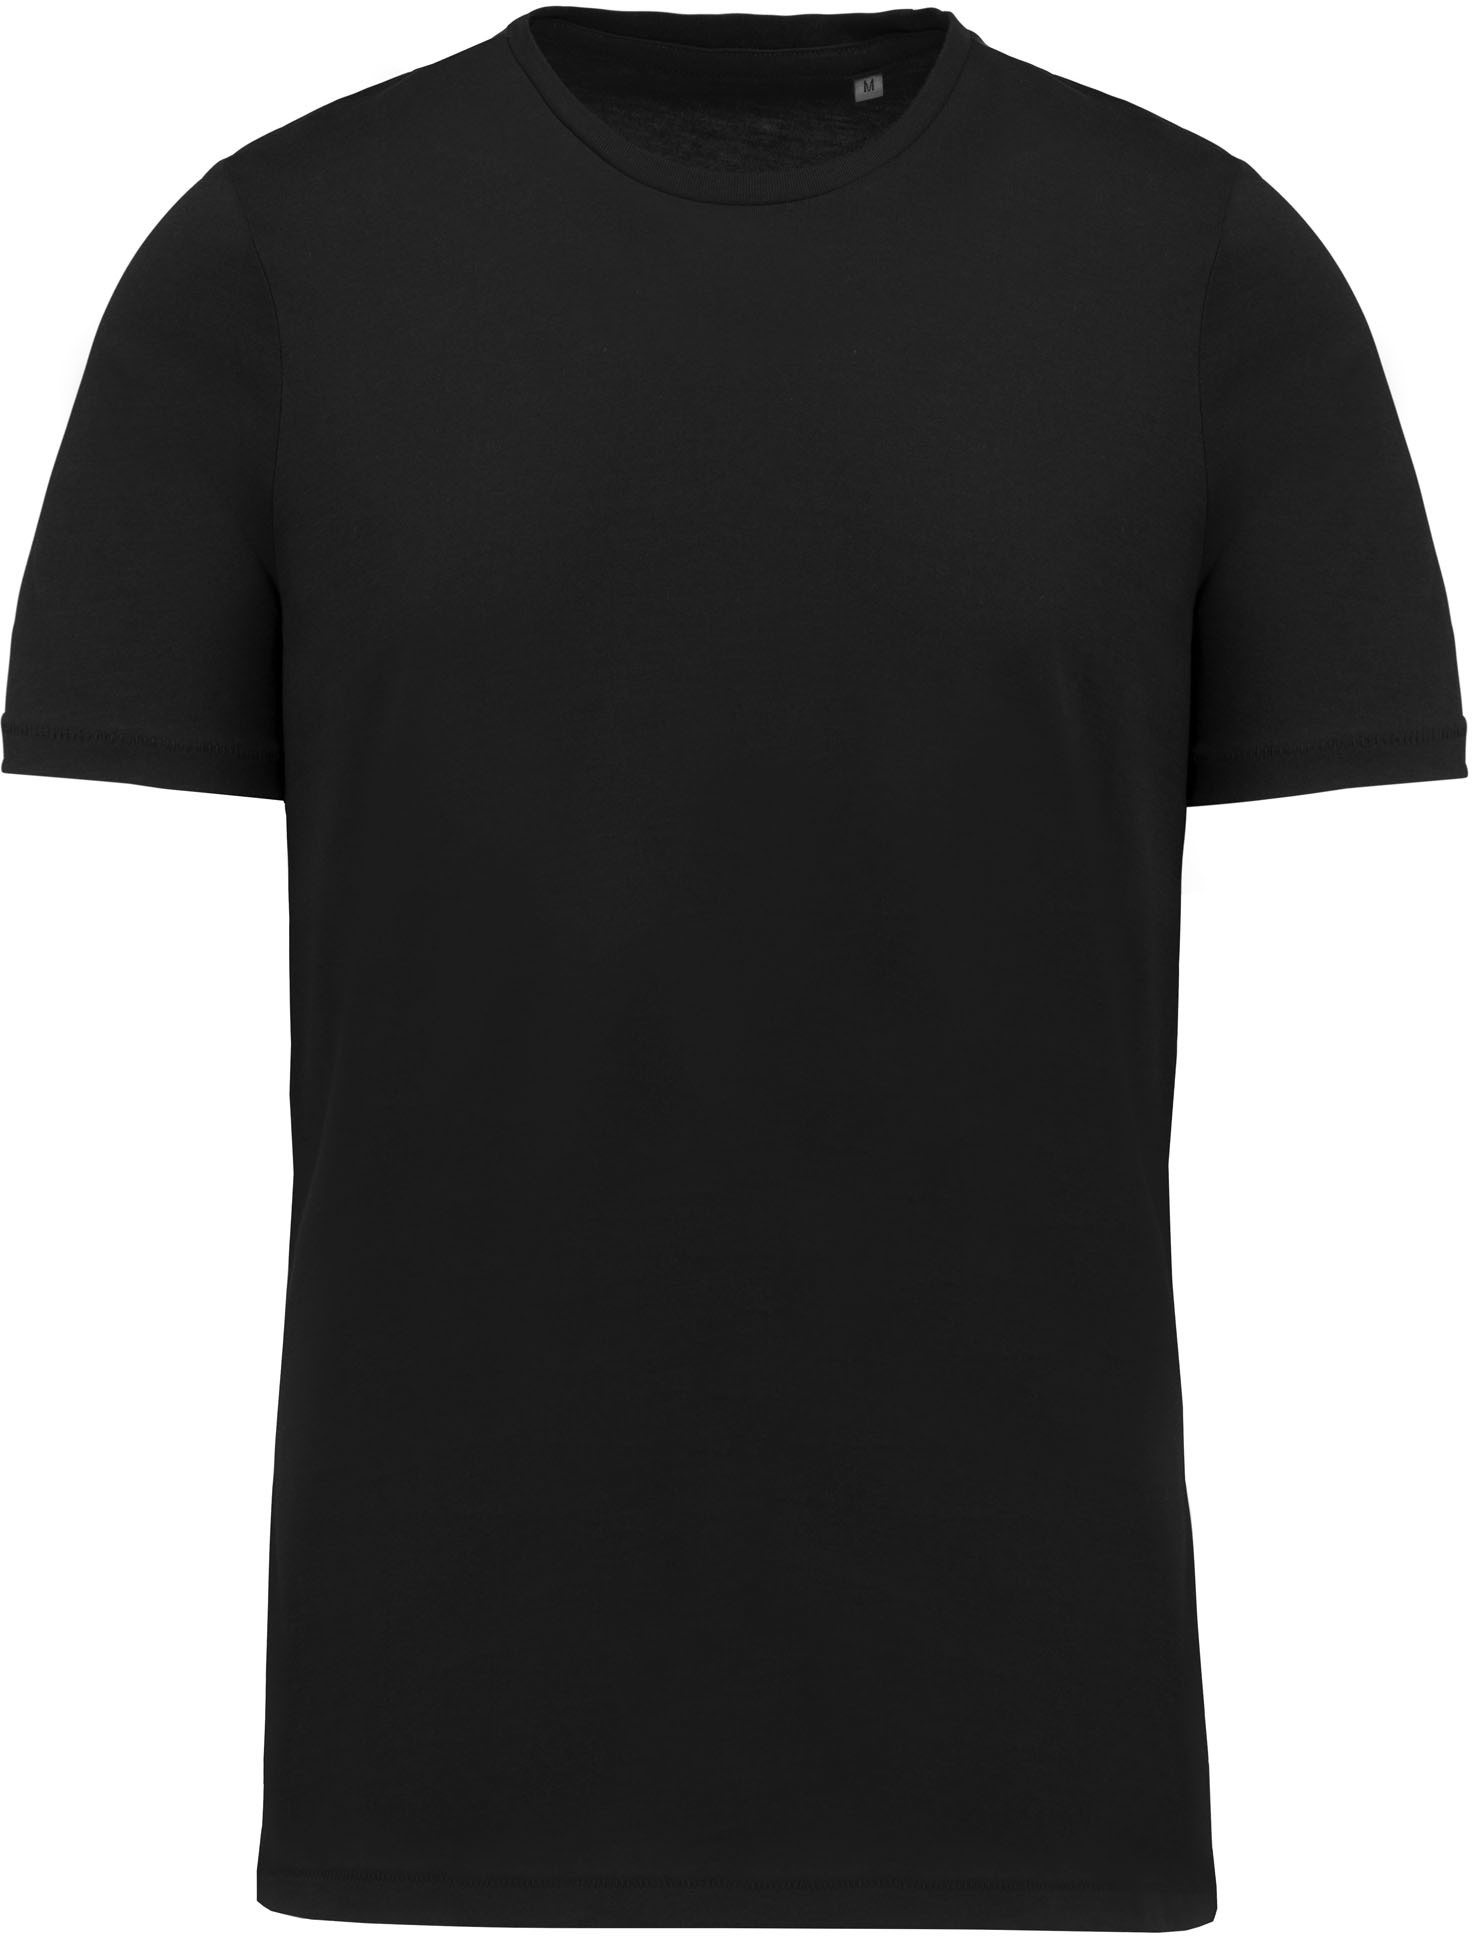 Tee-shirt Supima® col rond manches courtes homme